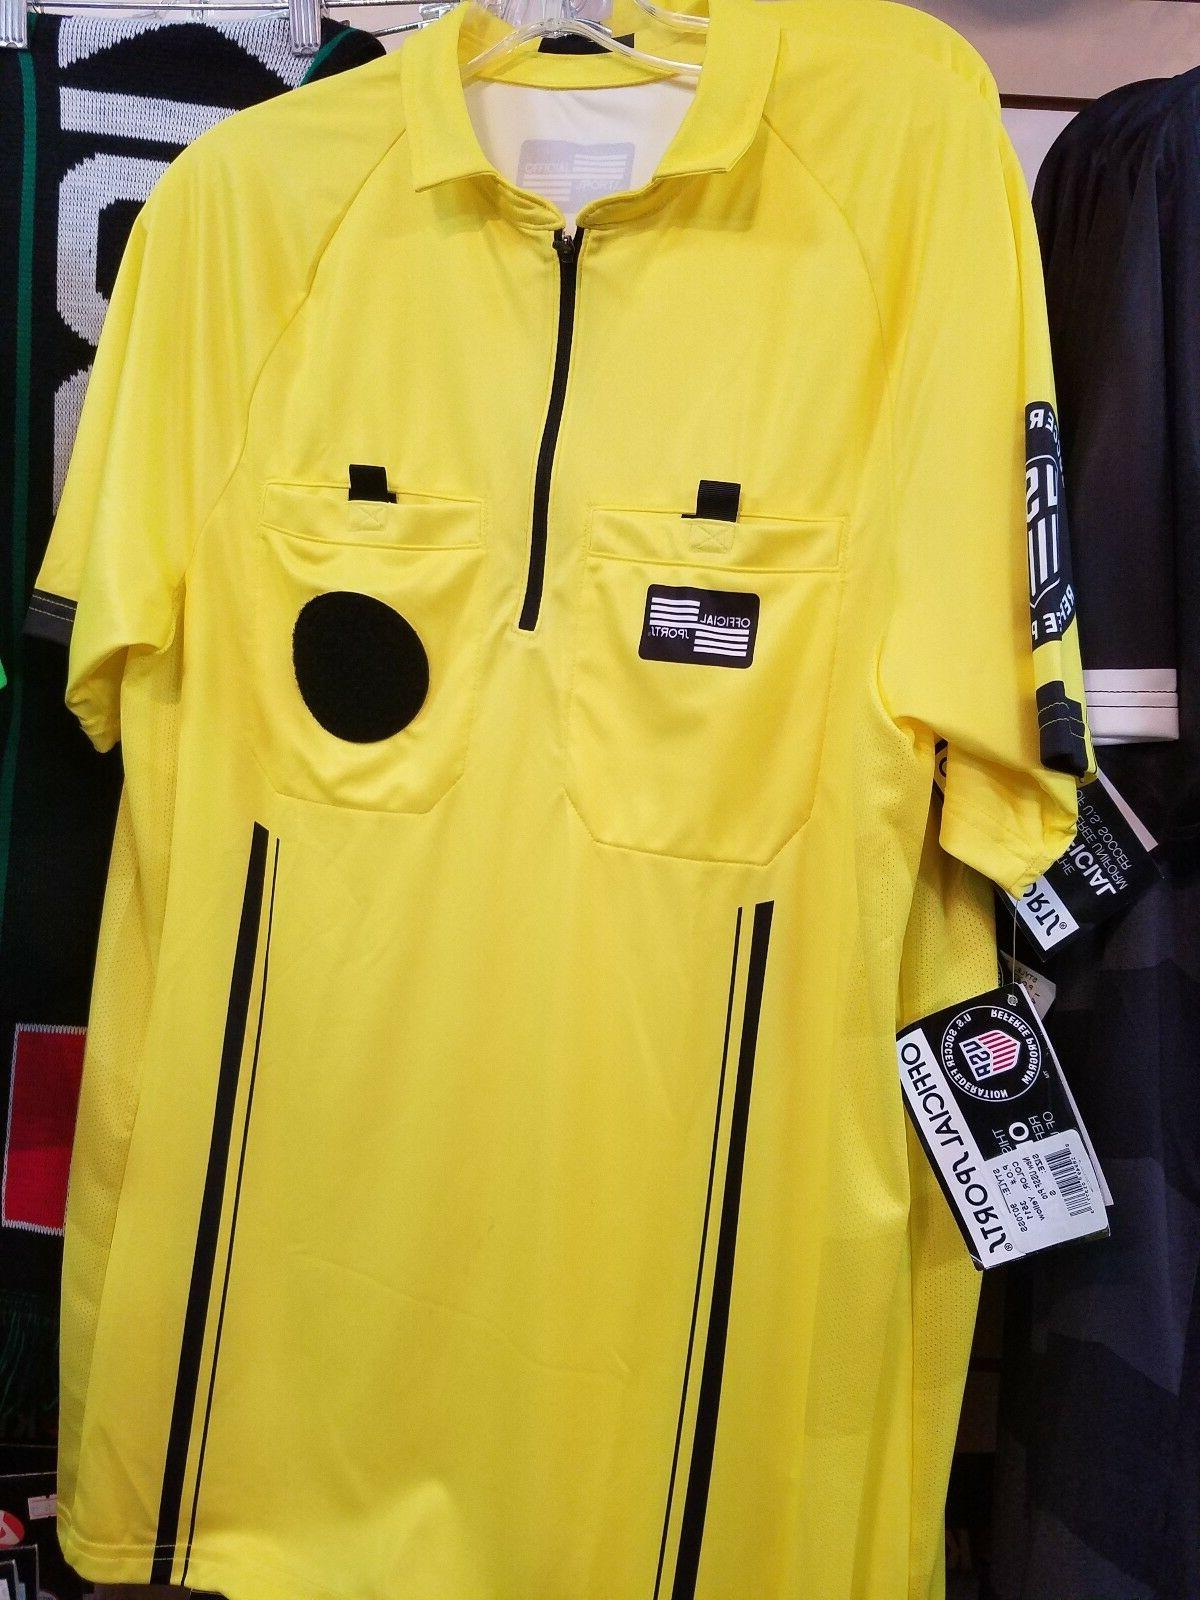 Soccer official Sports shirt green yellow